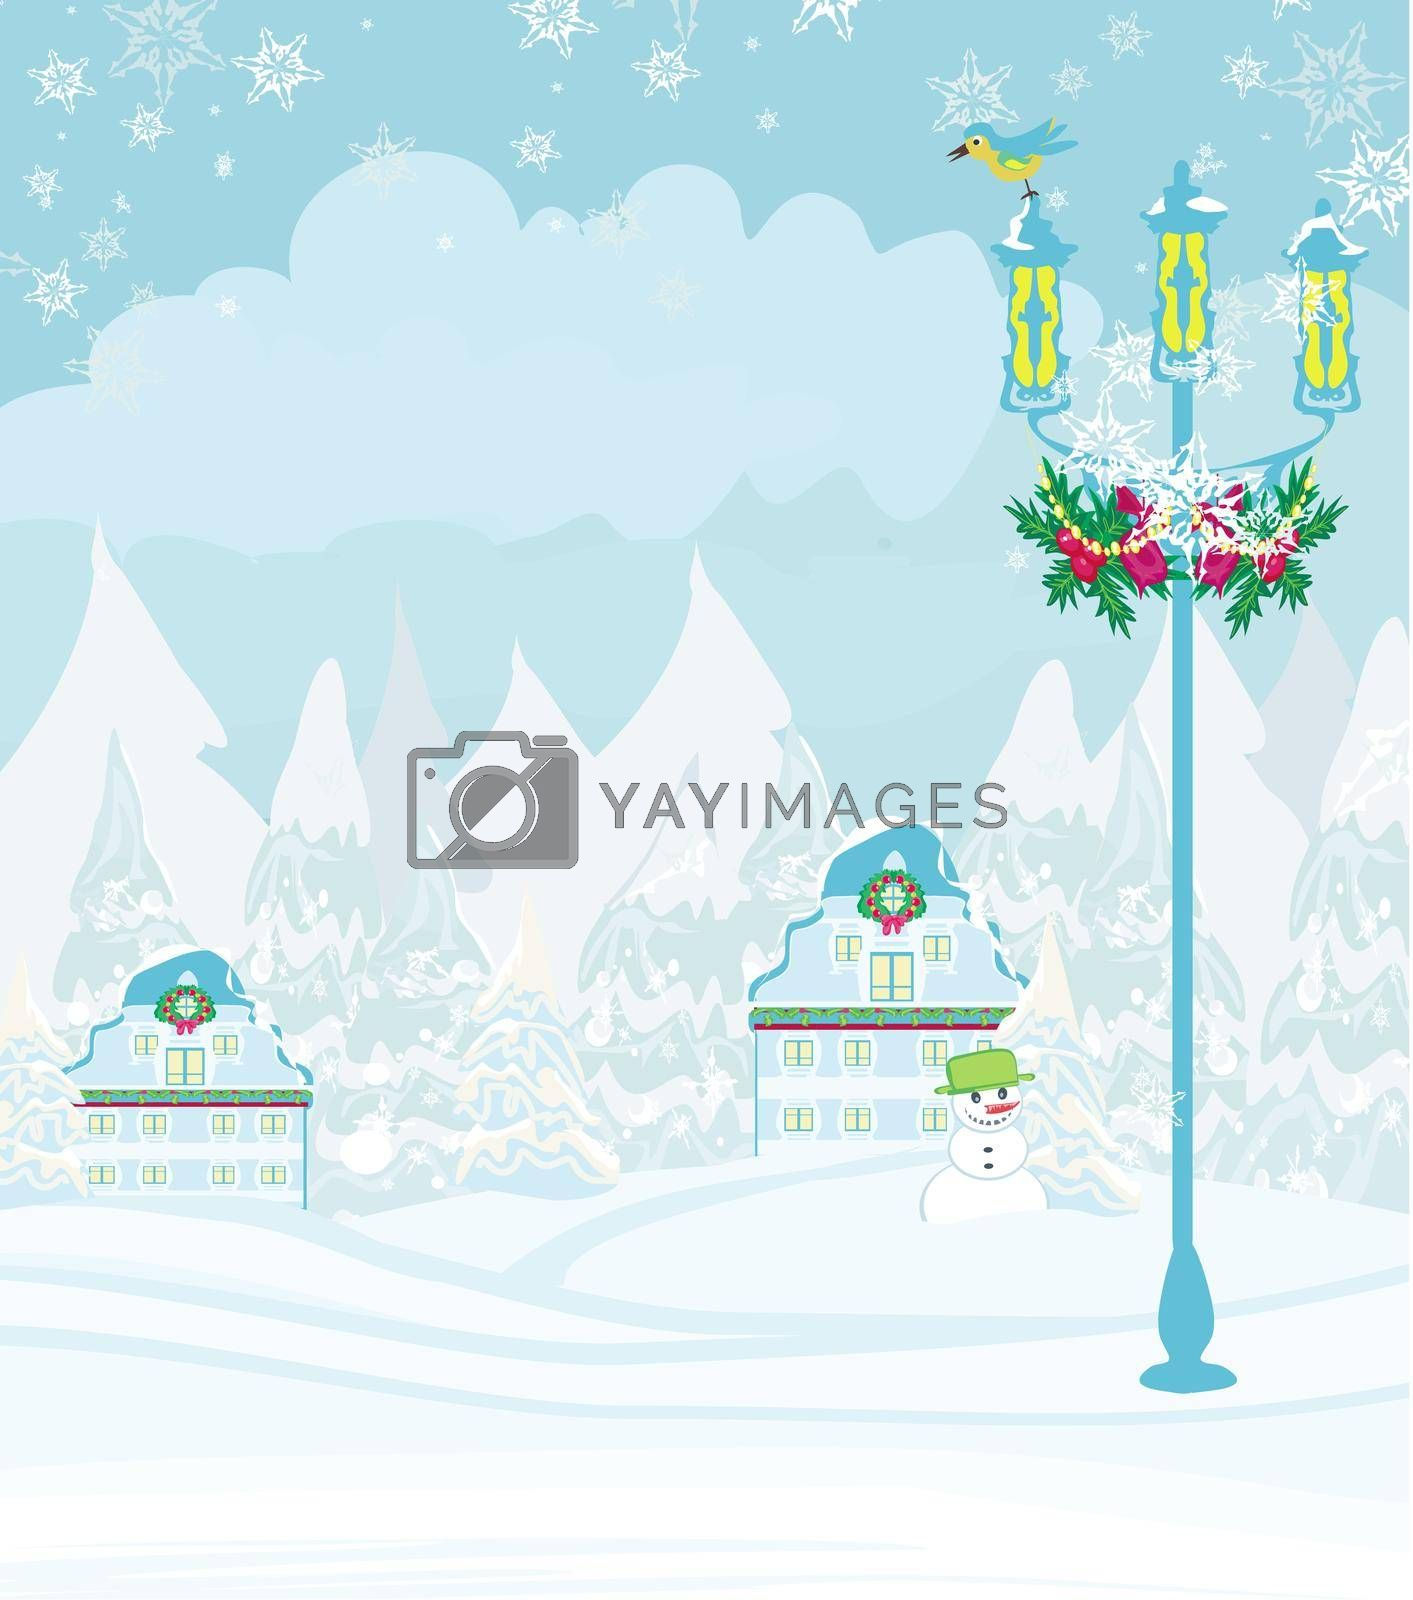 Royalty free image of winter city landscape - illustration with bird, houses and snow by JackyBrown